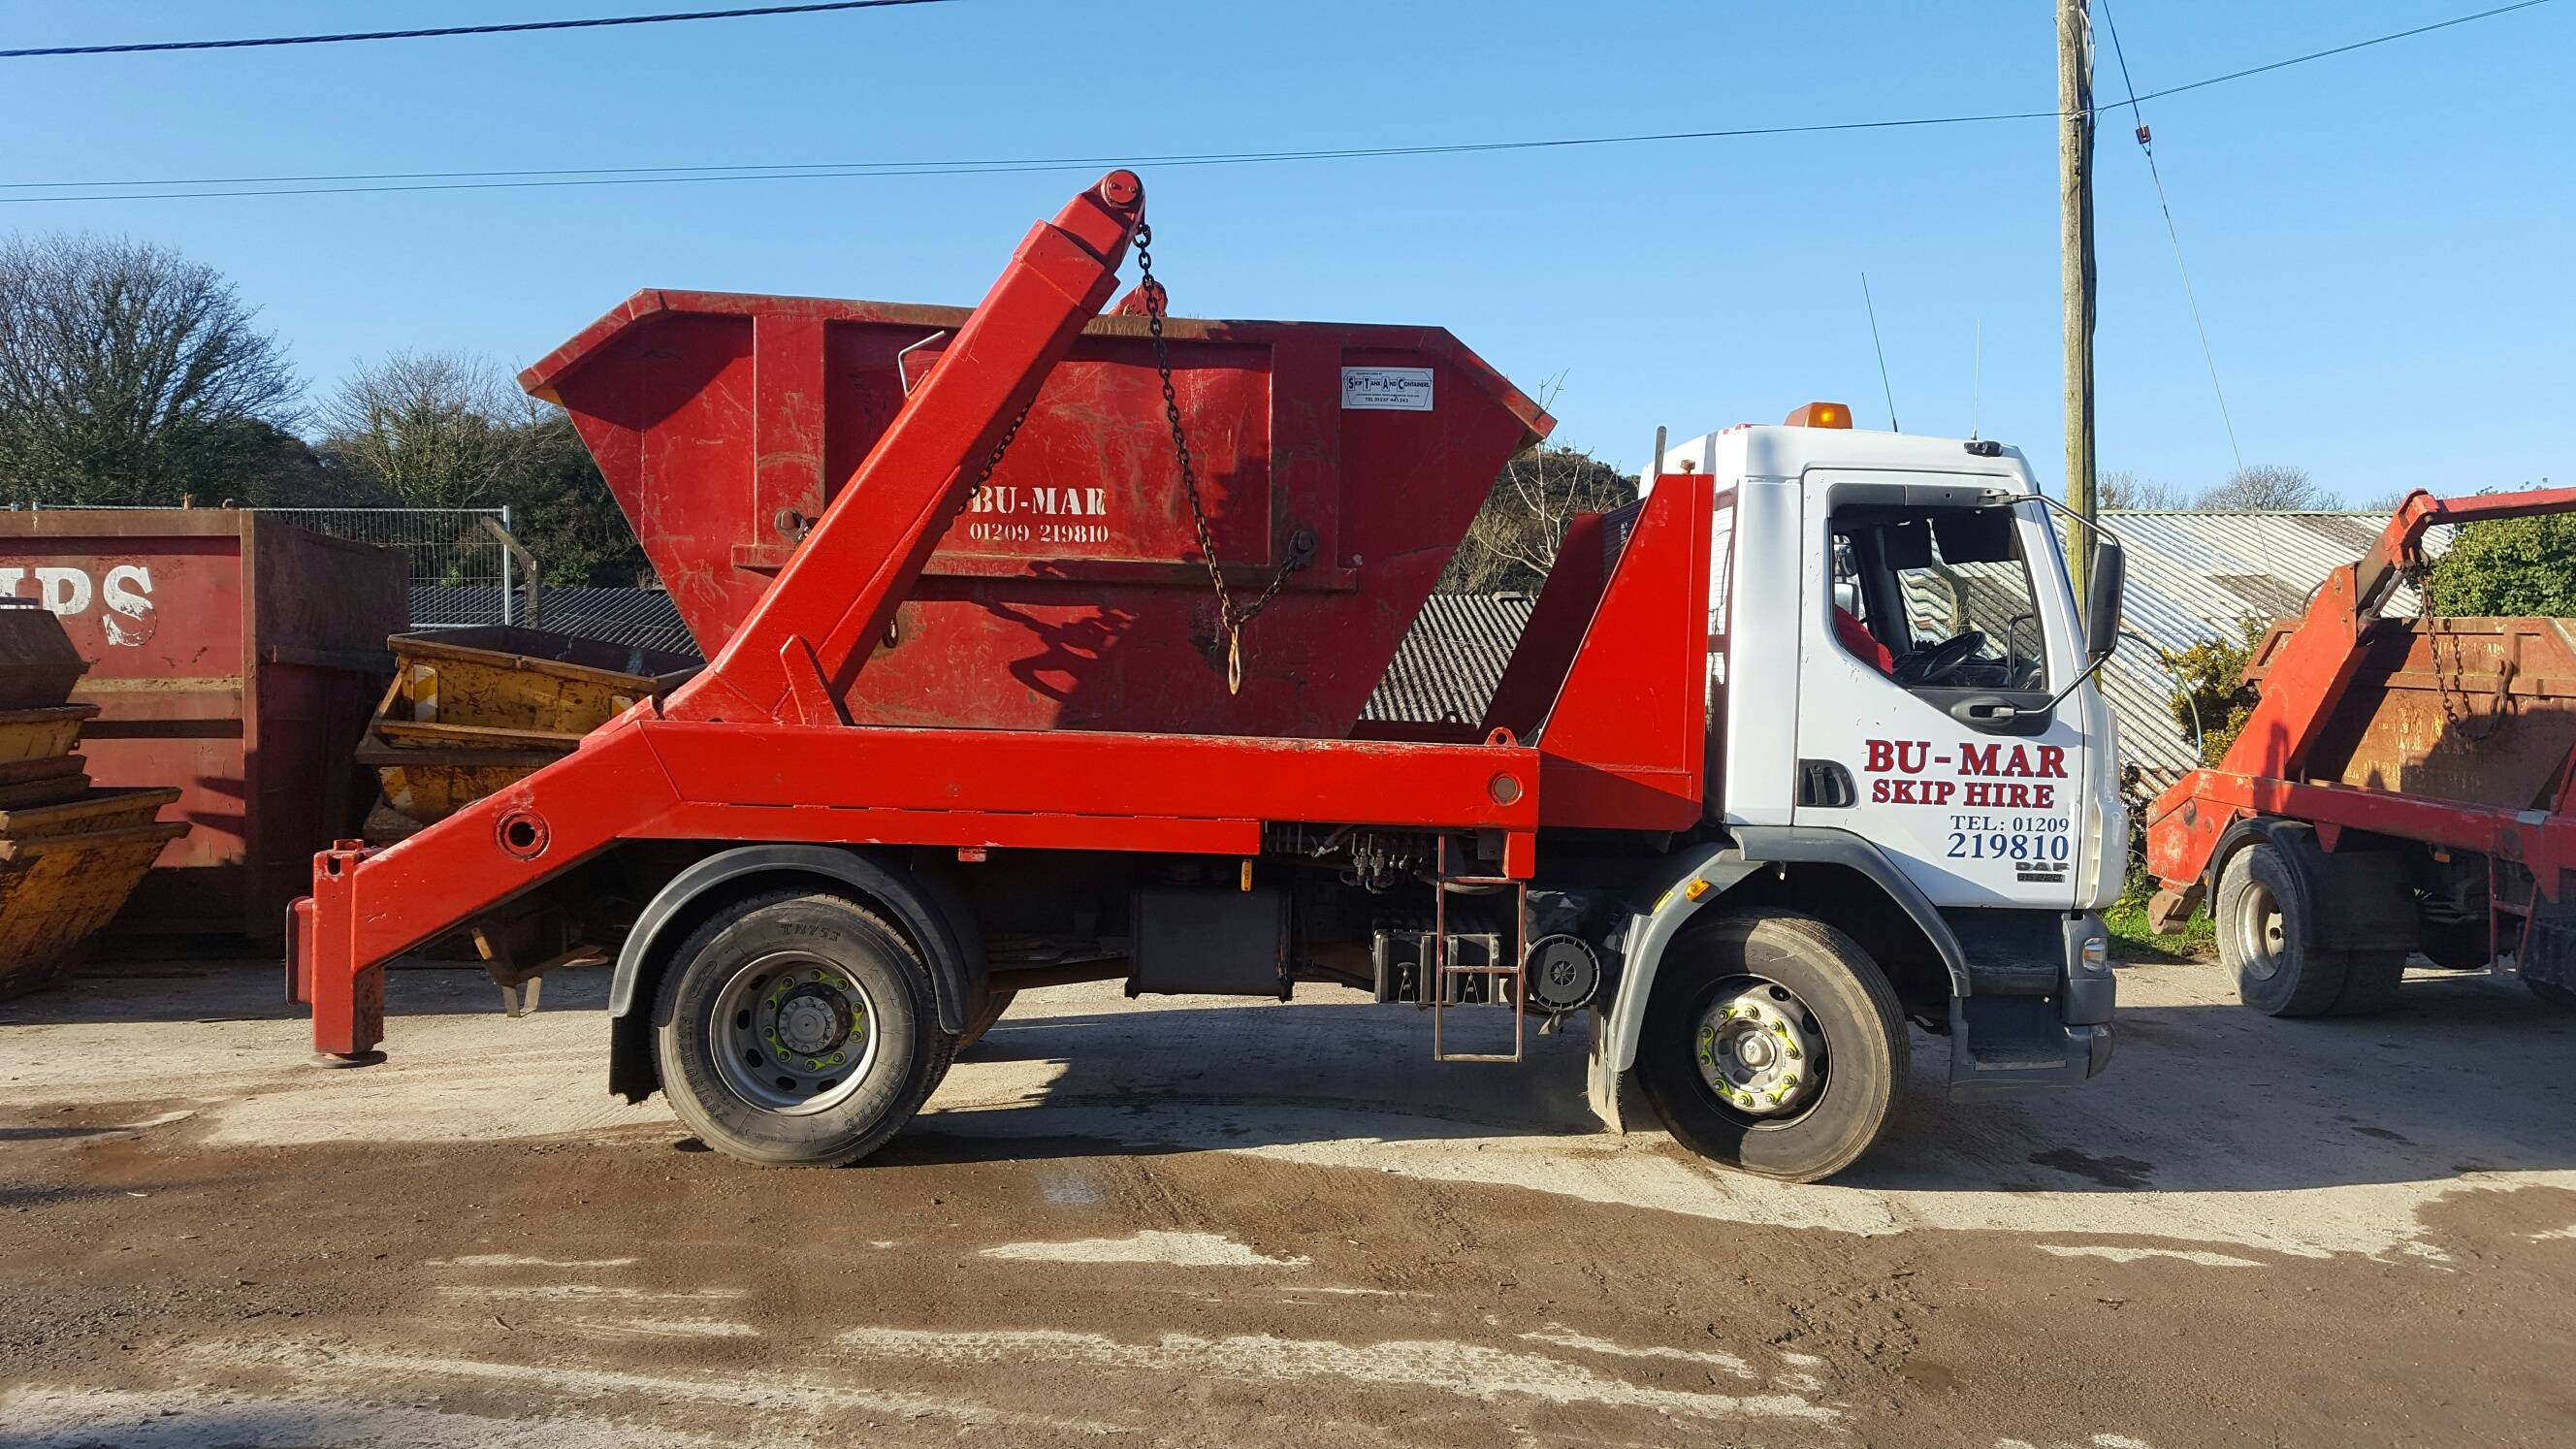 Bu-Mar Skip hire Lorry with Skip image